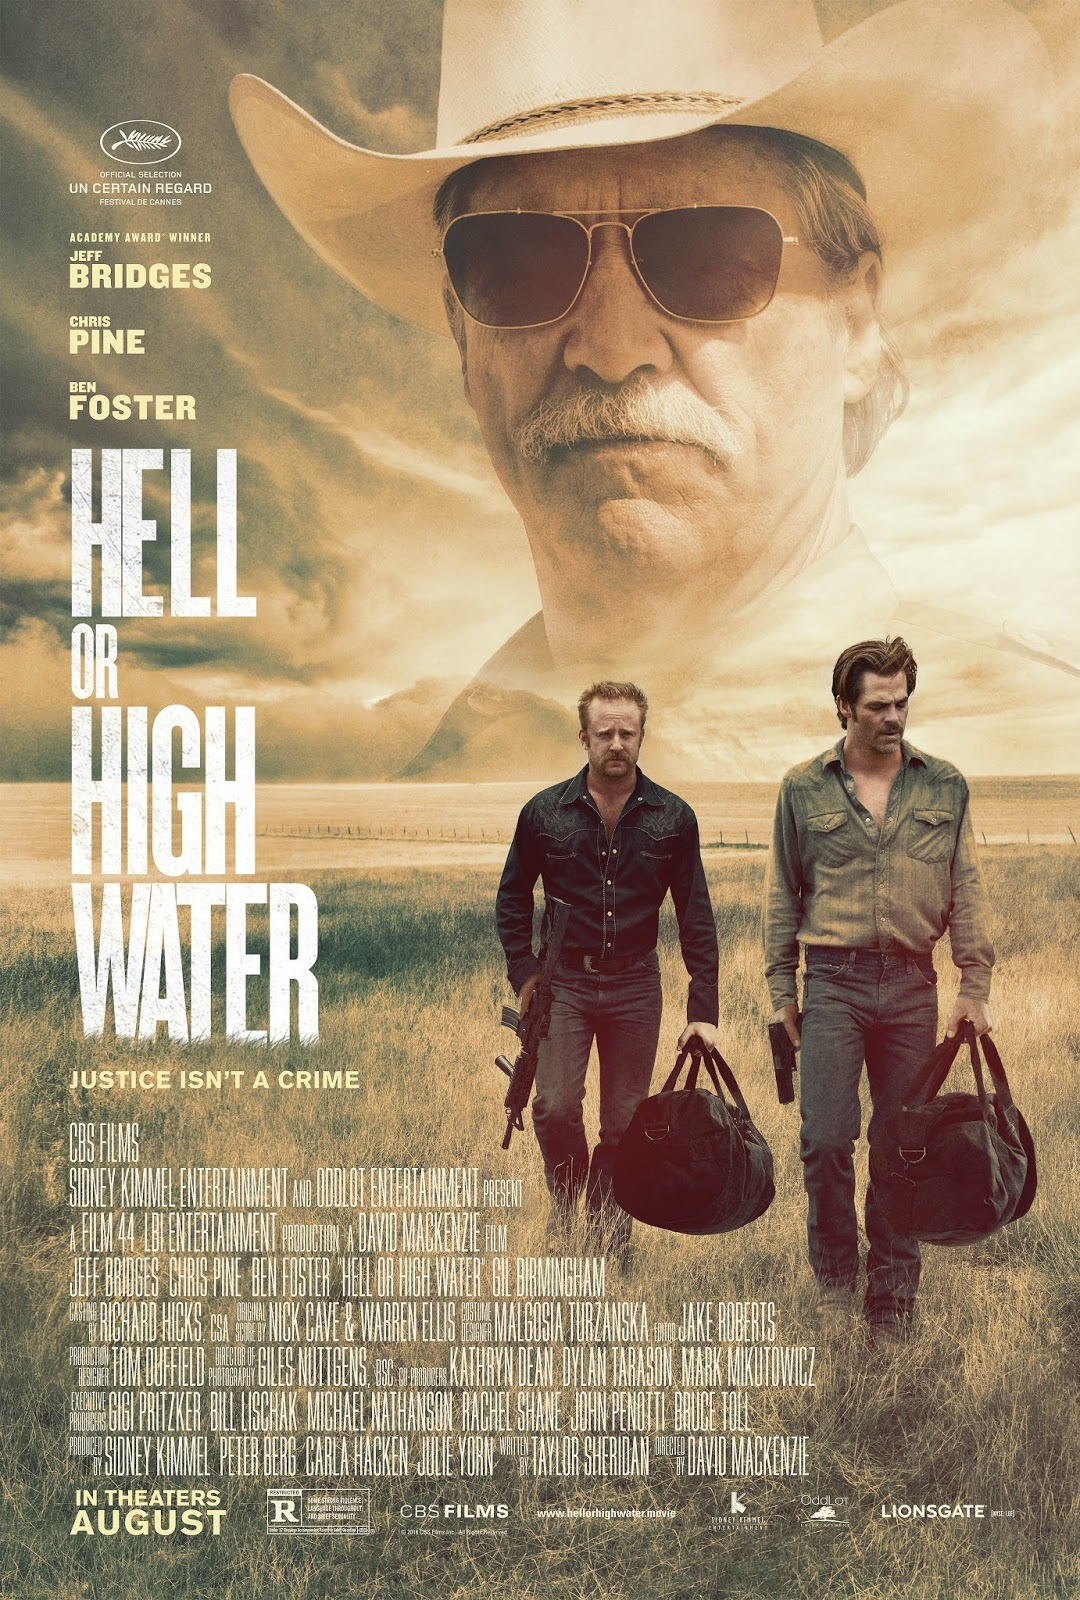 Hell or High Water presents a great character study